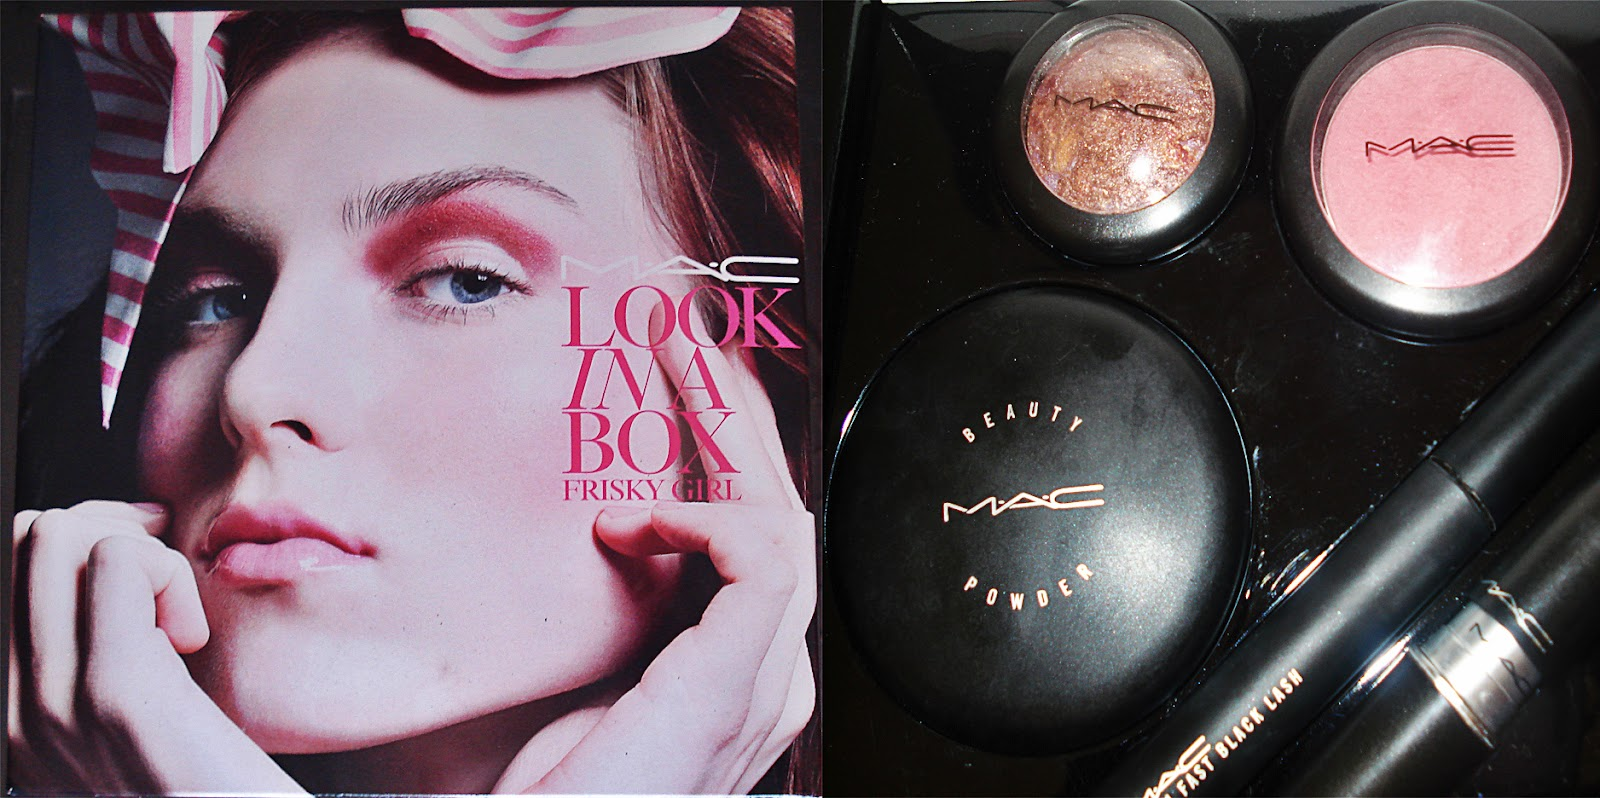 You can also find some great perfumes and creams there. I bought this pretty MAC Look In A Box set for just R420!